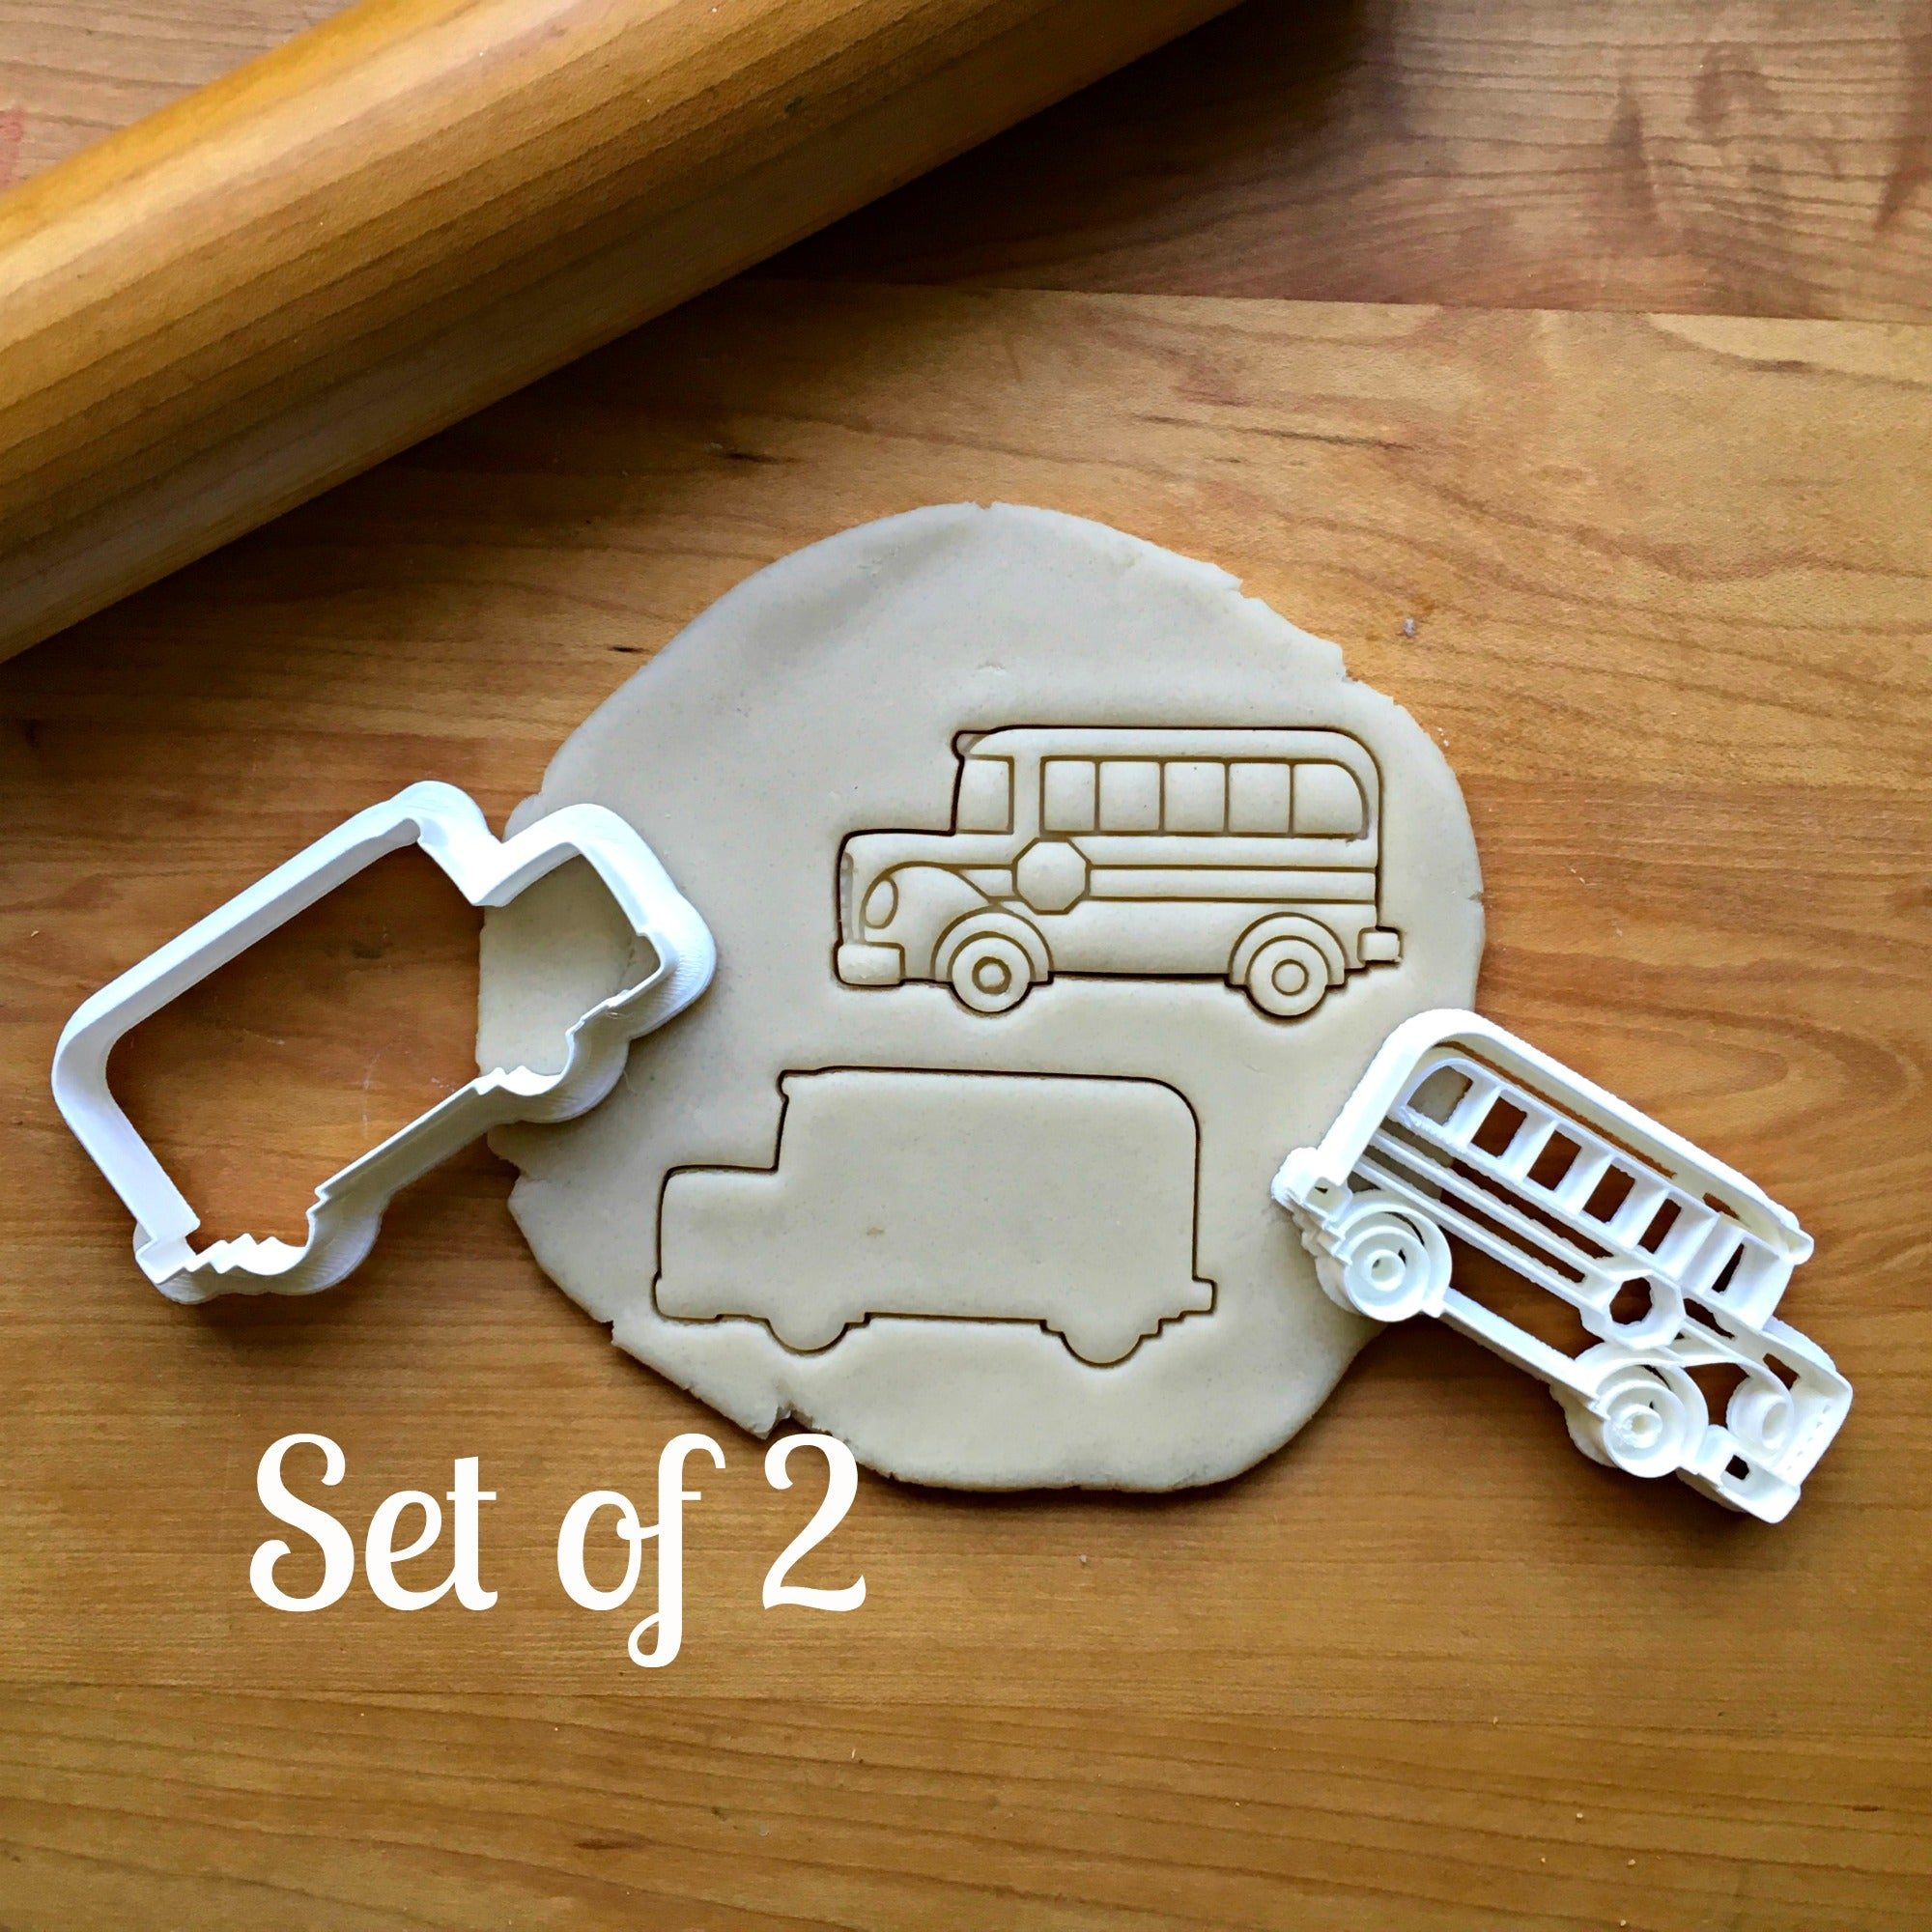 Set of 2 School Bus Cookie Cutters/Dishwasher Safe